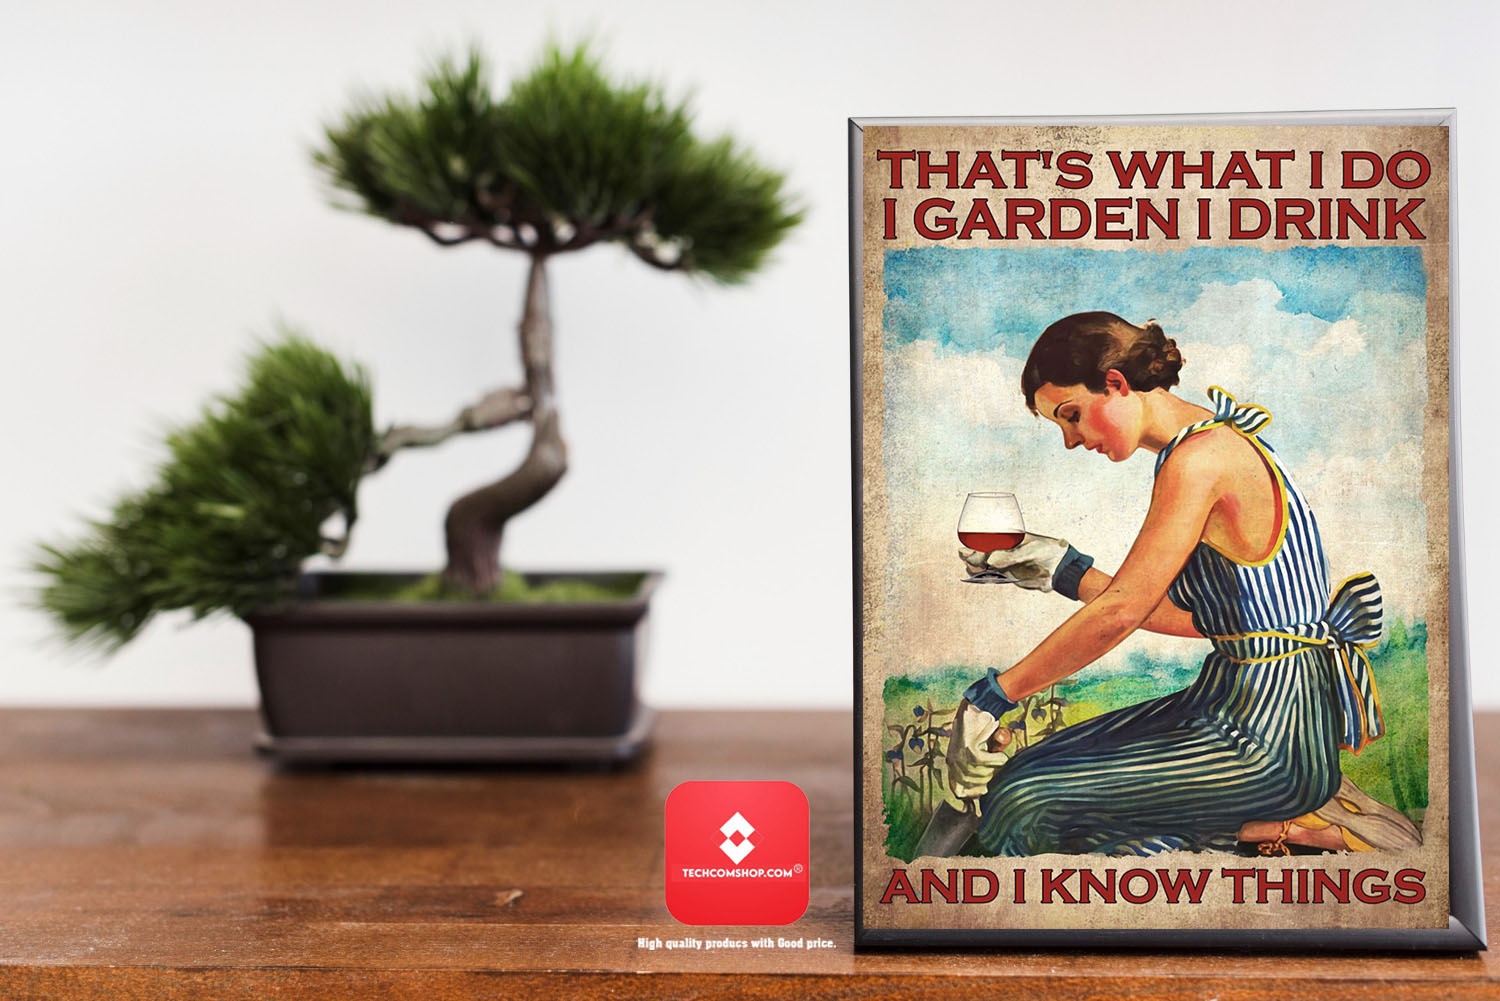 Rum wine That's what I do I garden I drink and I know things poster 8